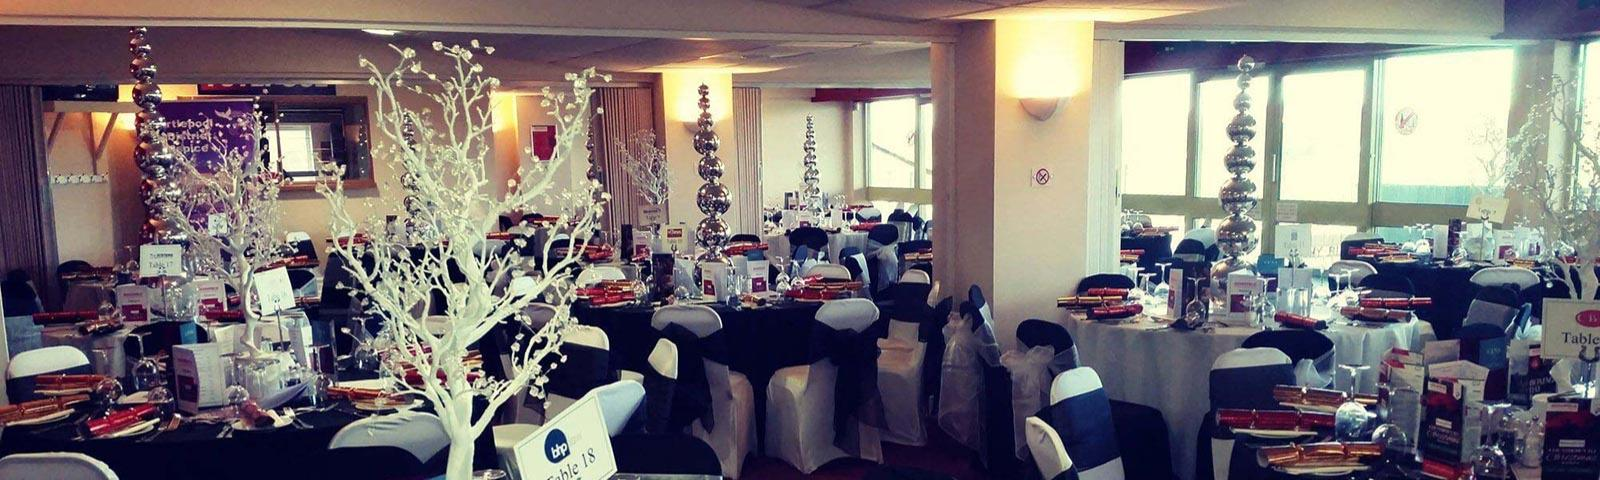 A dining room decorated in a Christmas theme.